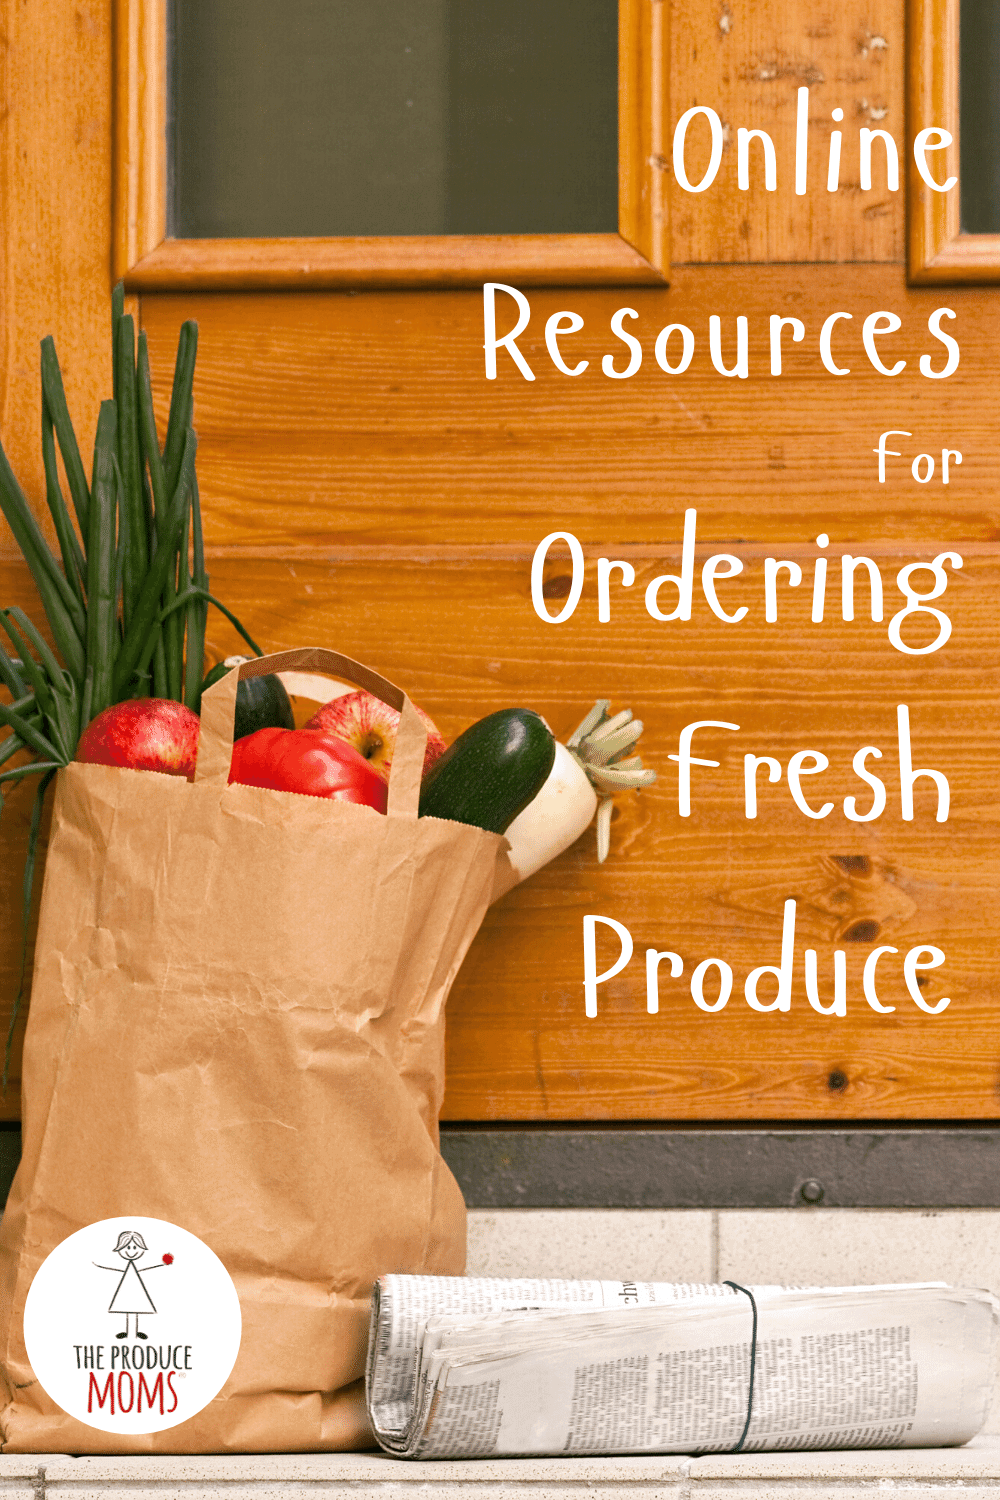 Resources For Ordering Produce Online